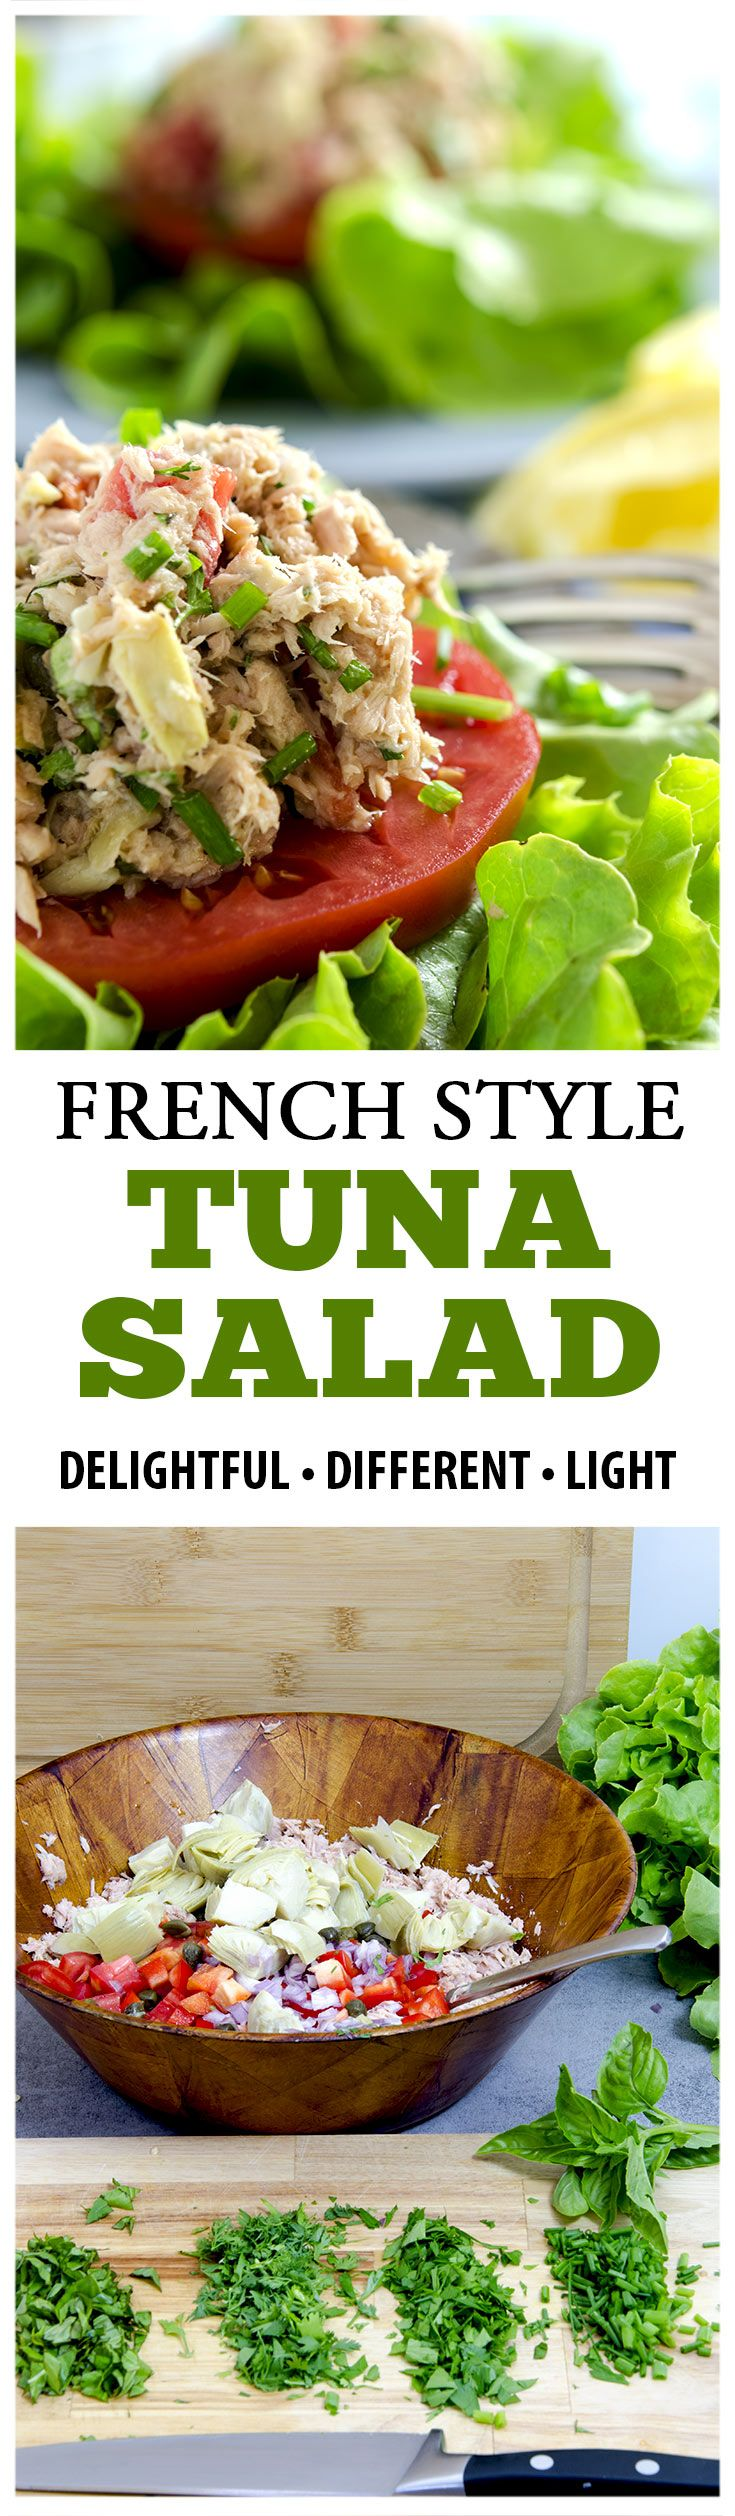 A fresh tuna salad is one of those perfect recipes for a hot summer day. An easy casserole for when you have guests over and you don't want to die of heatstroke in the kitchen. Now, we all know the benefits of eating tuna (and fish in general), but this salad will melt on your tongue! An ideal combination of tomatoes, shallots, artichokes, red pepper, and fresh herbs, all completing the canned tuna on a bed of lettuce! It's so simple. And simply the best!